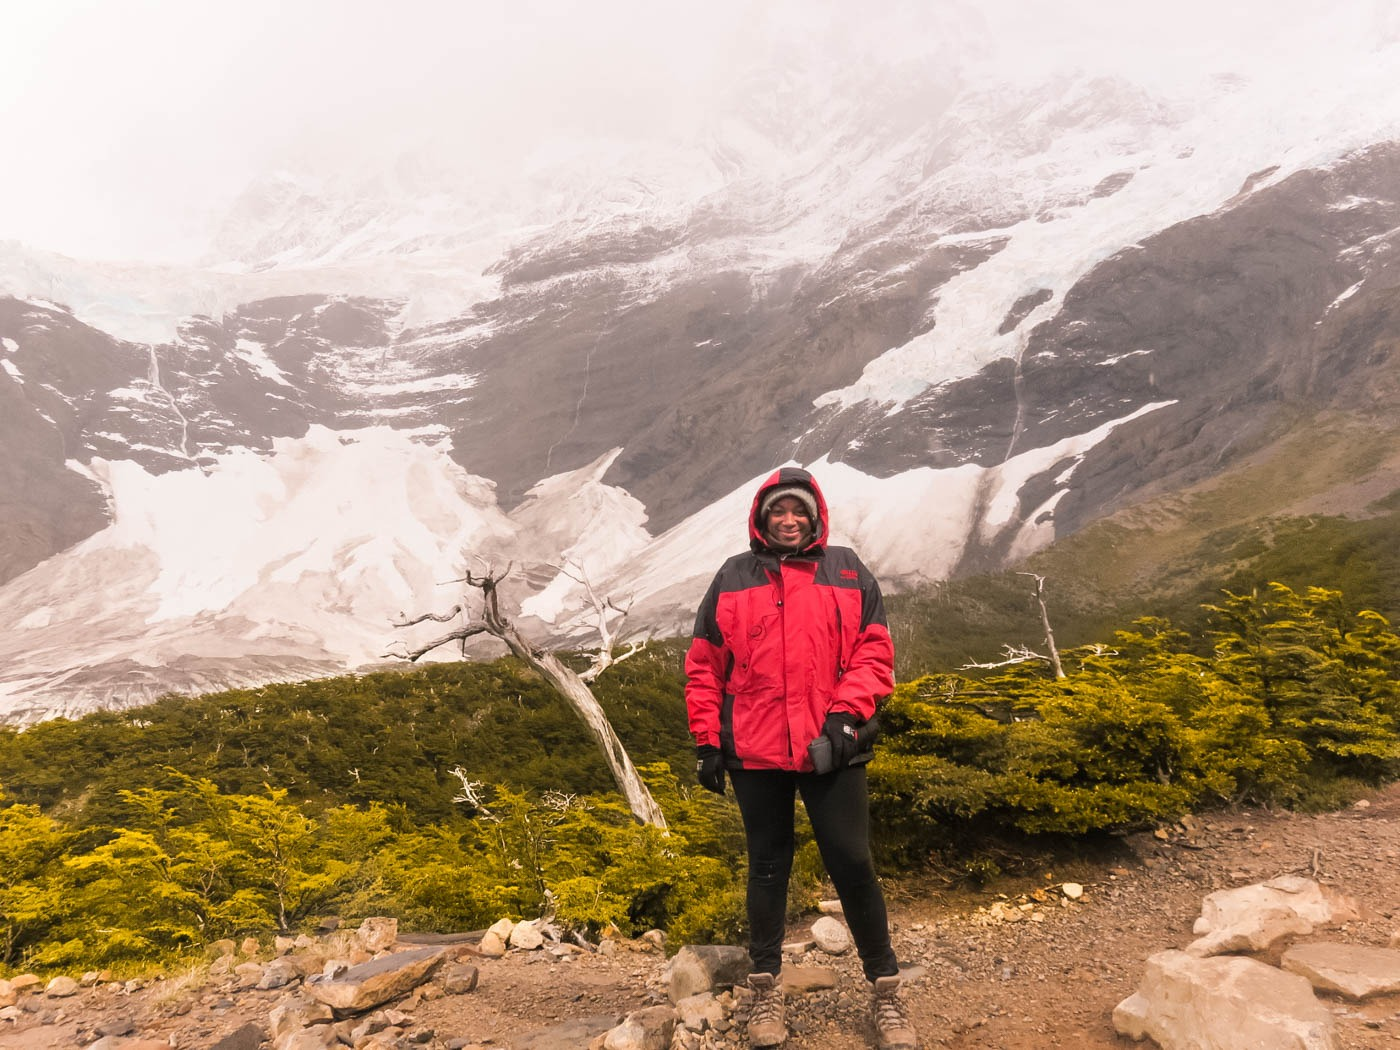 Julianna Barnaby hiking in Torres del Paine National Park